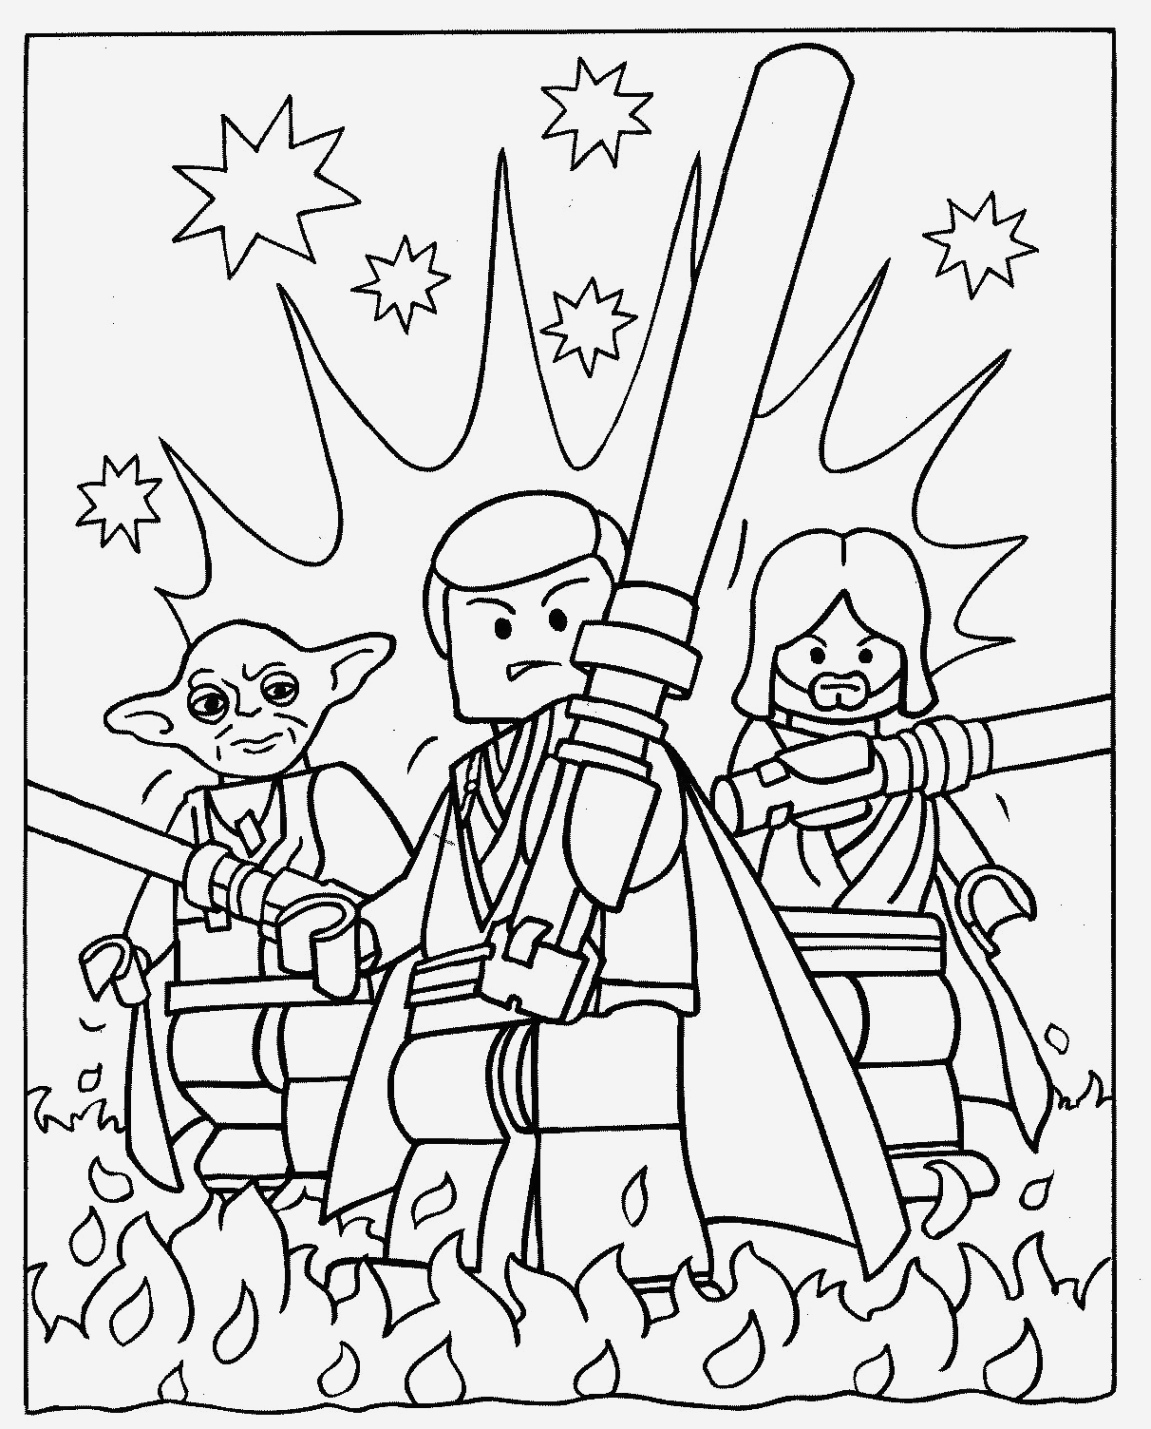 Coloriage Lego Ninjago Best Of Lego Ninjago Season 7 Kaucal Fed13fe Kidnaptickets Of Coloriage Lego Ninjago